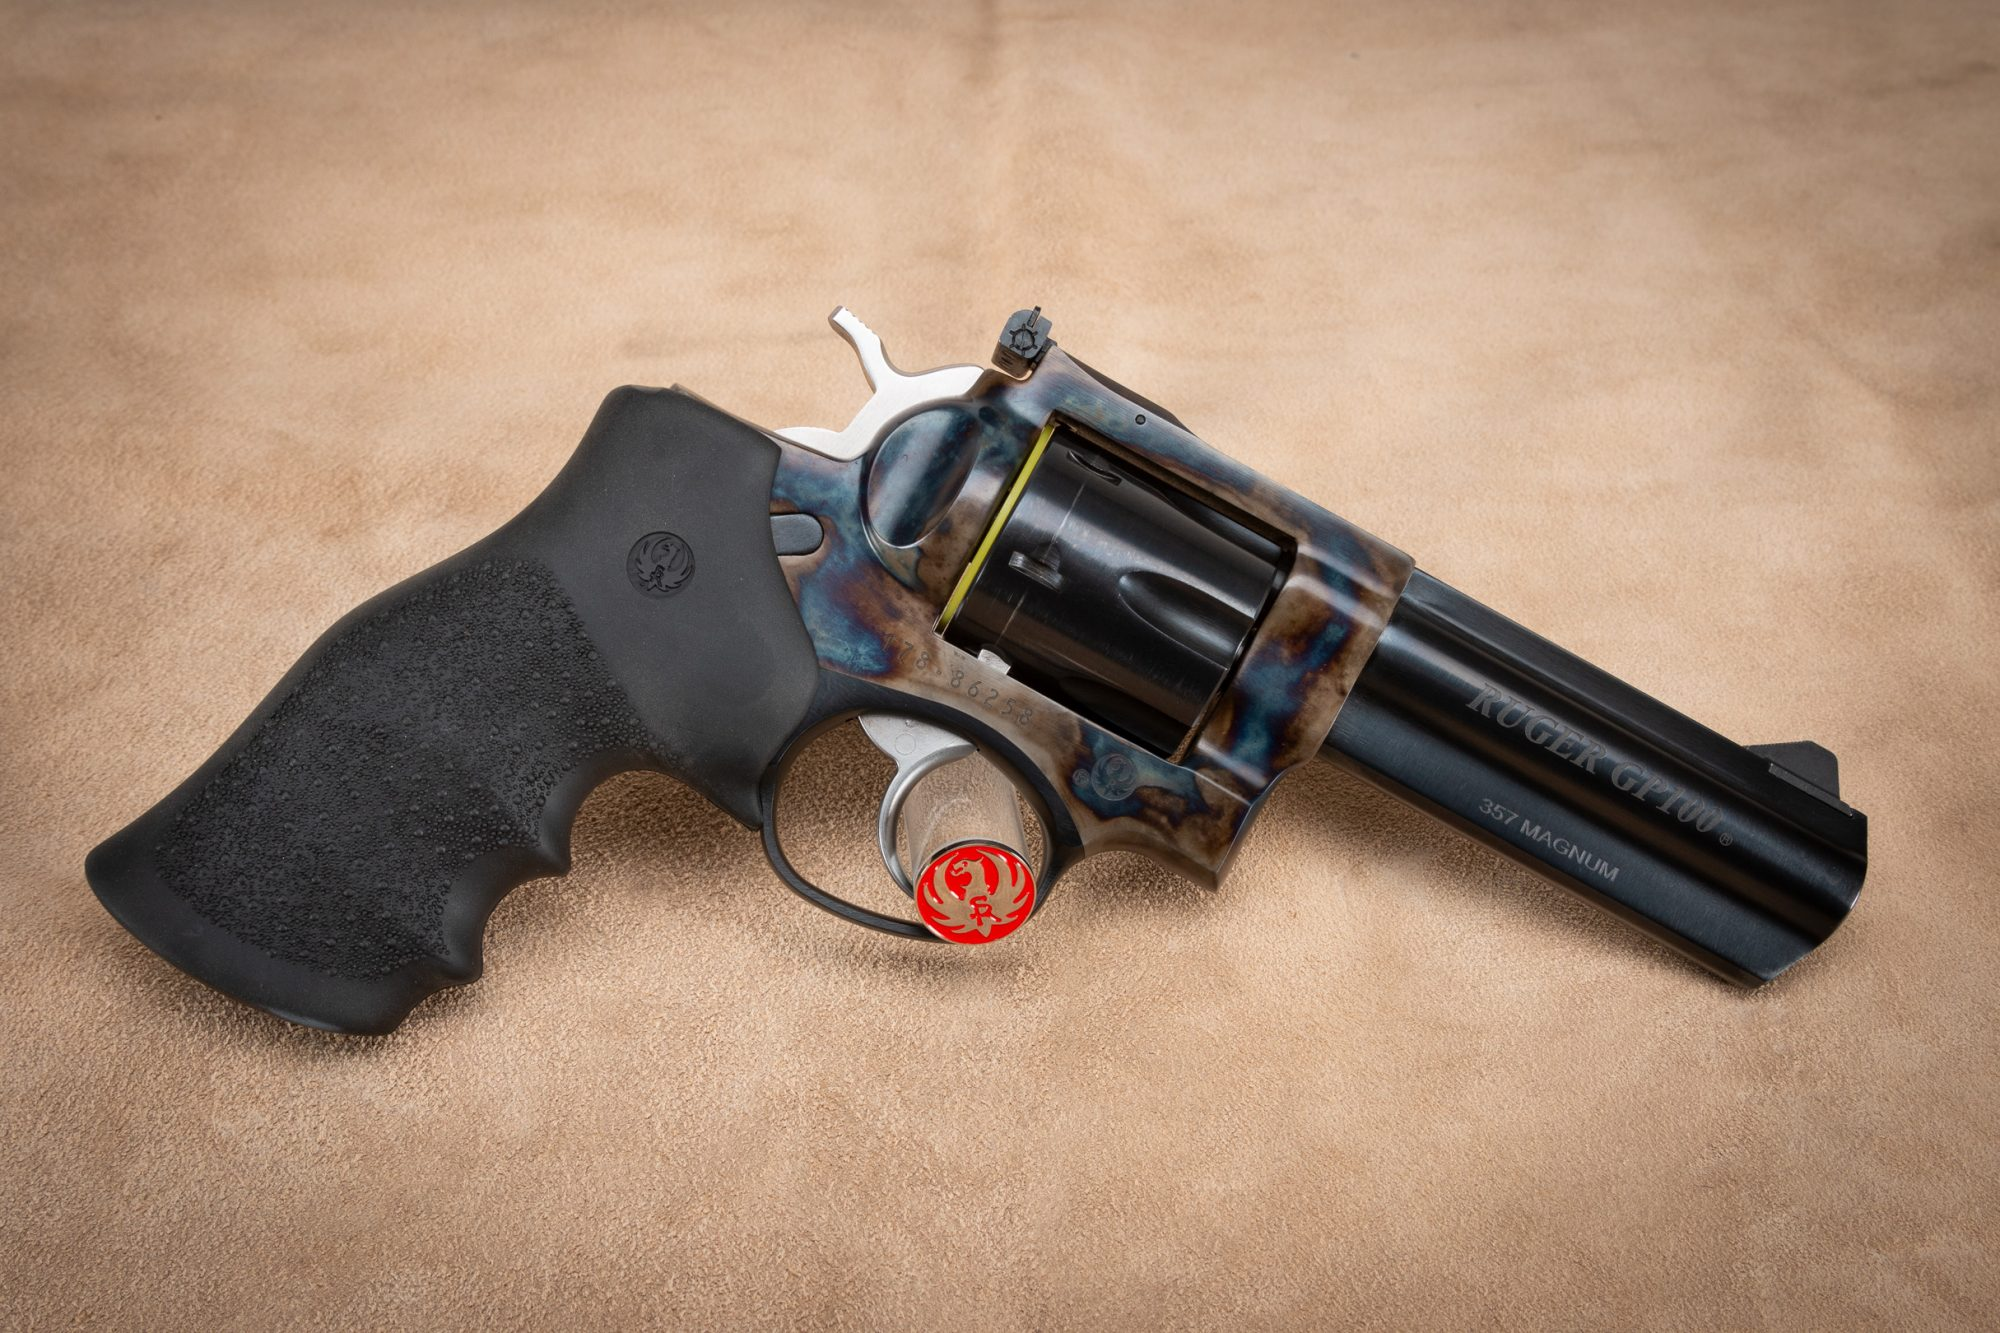 Photo of Ruger GP100 in .357 Magnum featuring Turnbull Restoration color case hardened frame